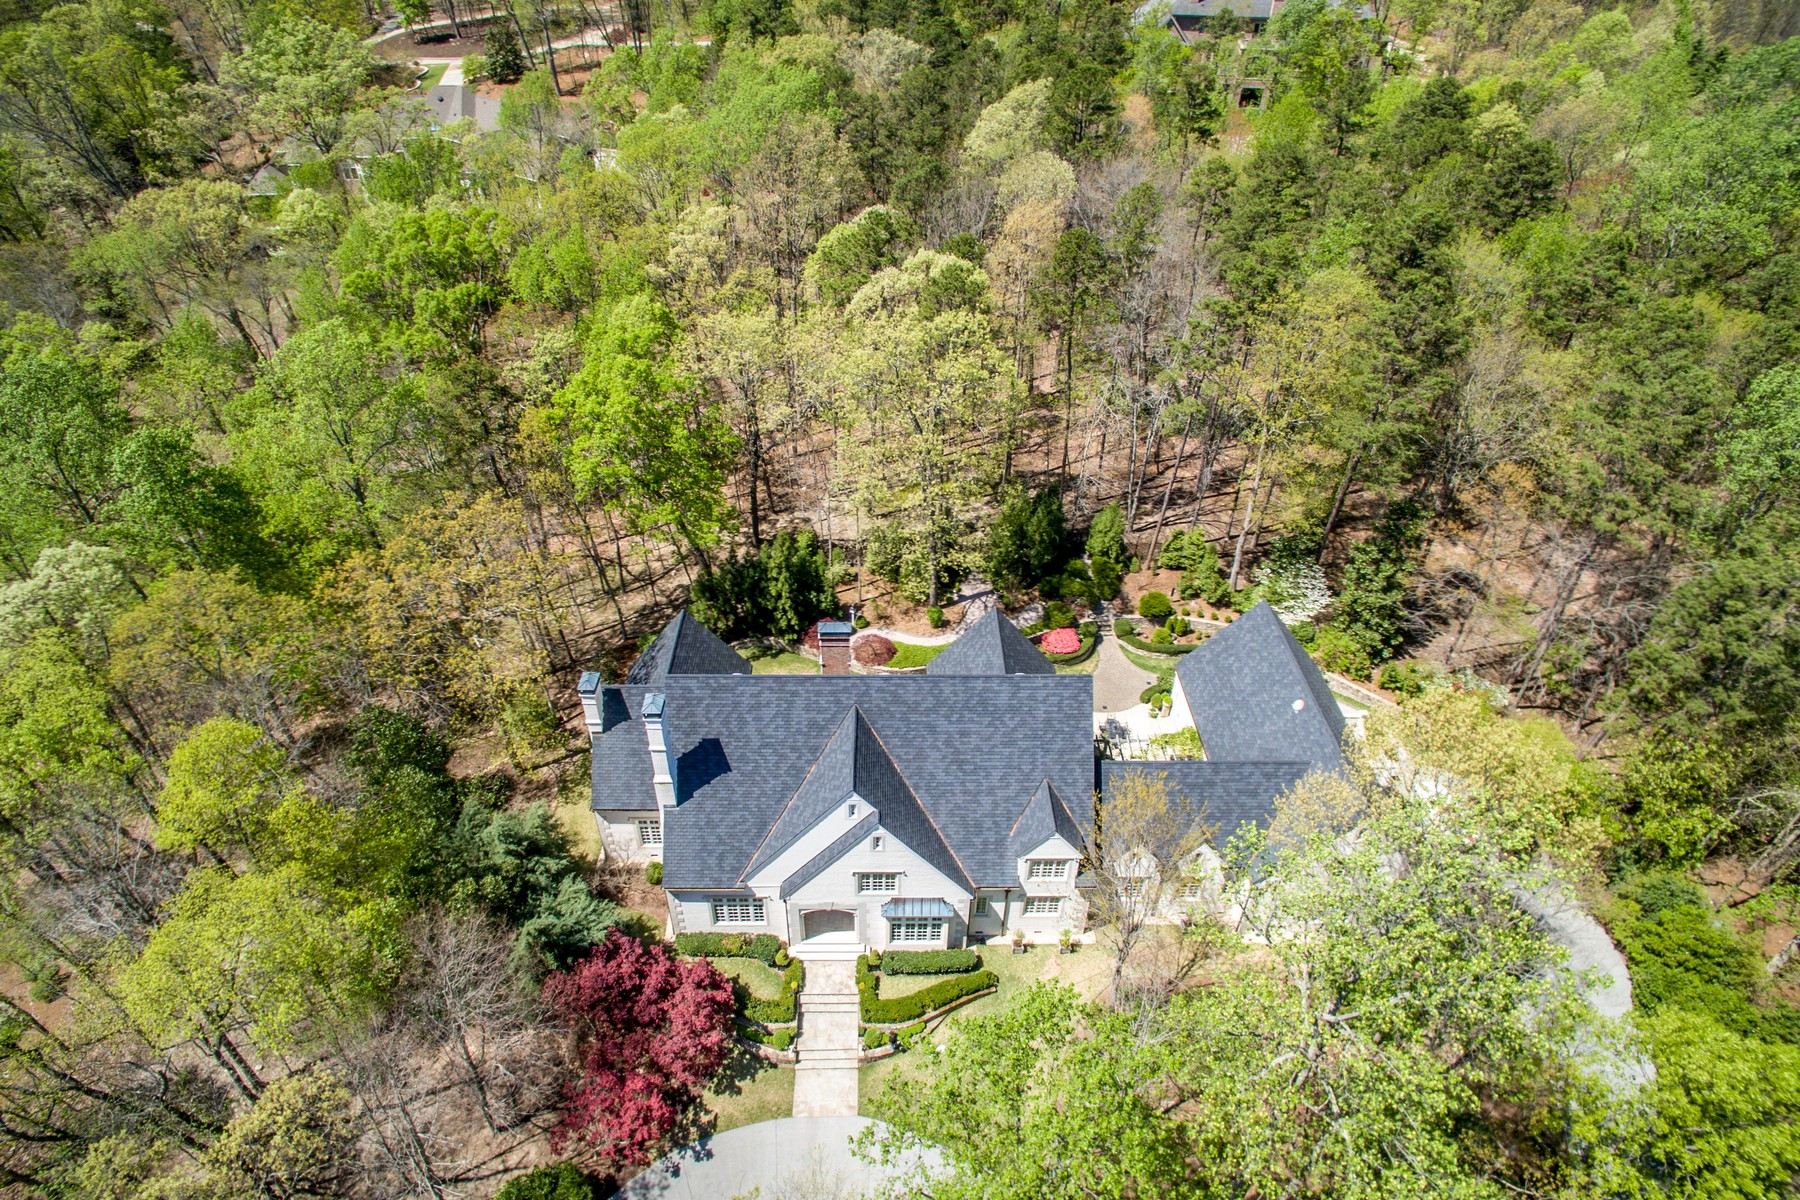 Single Family Home for Sale at Governor's Club Manor 11124 Governors Drive Chapel Hill, North Carolina, 27517 United StatesIn/Around: Cary, Chapel Hill, Raleigh, Durham